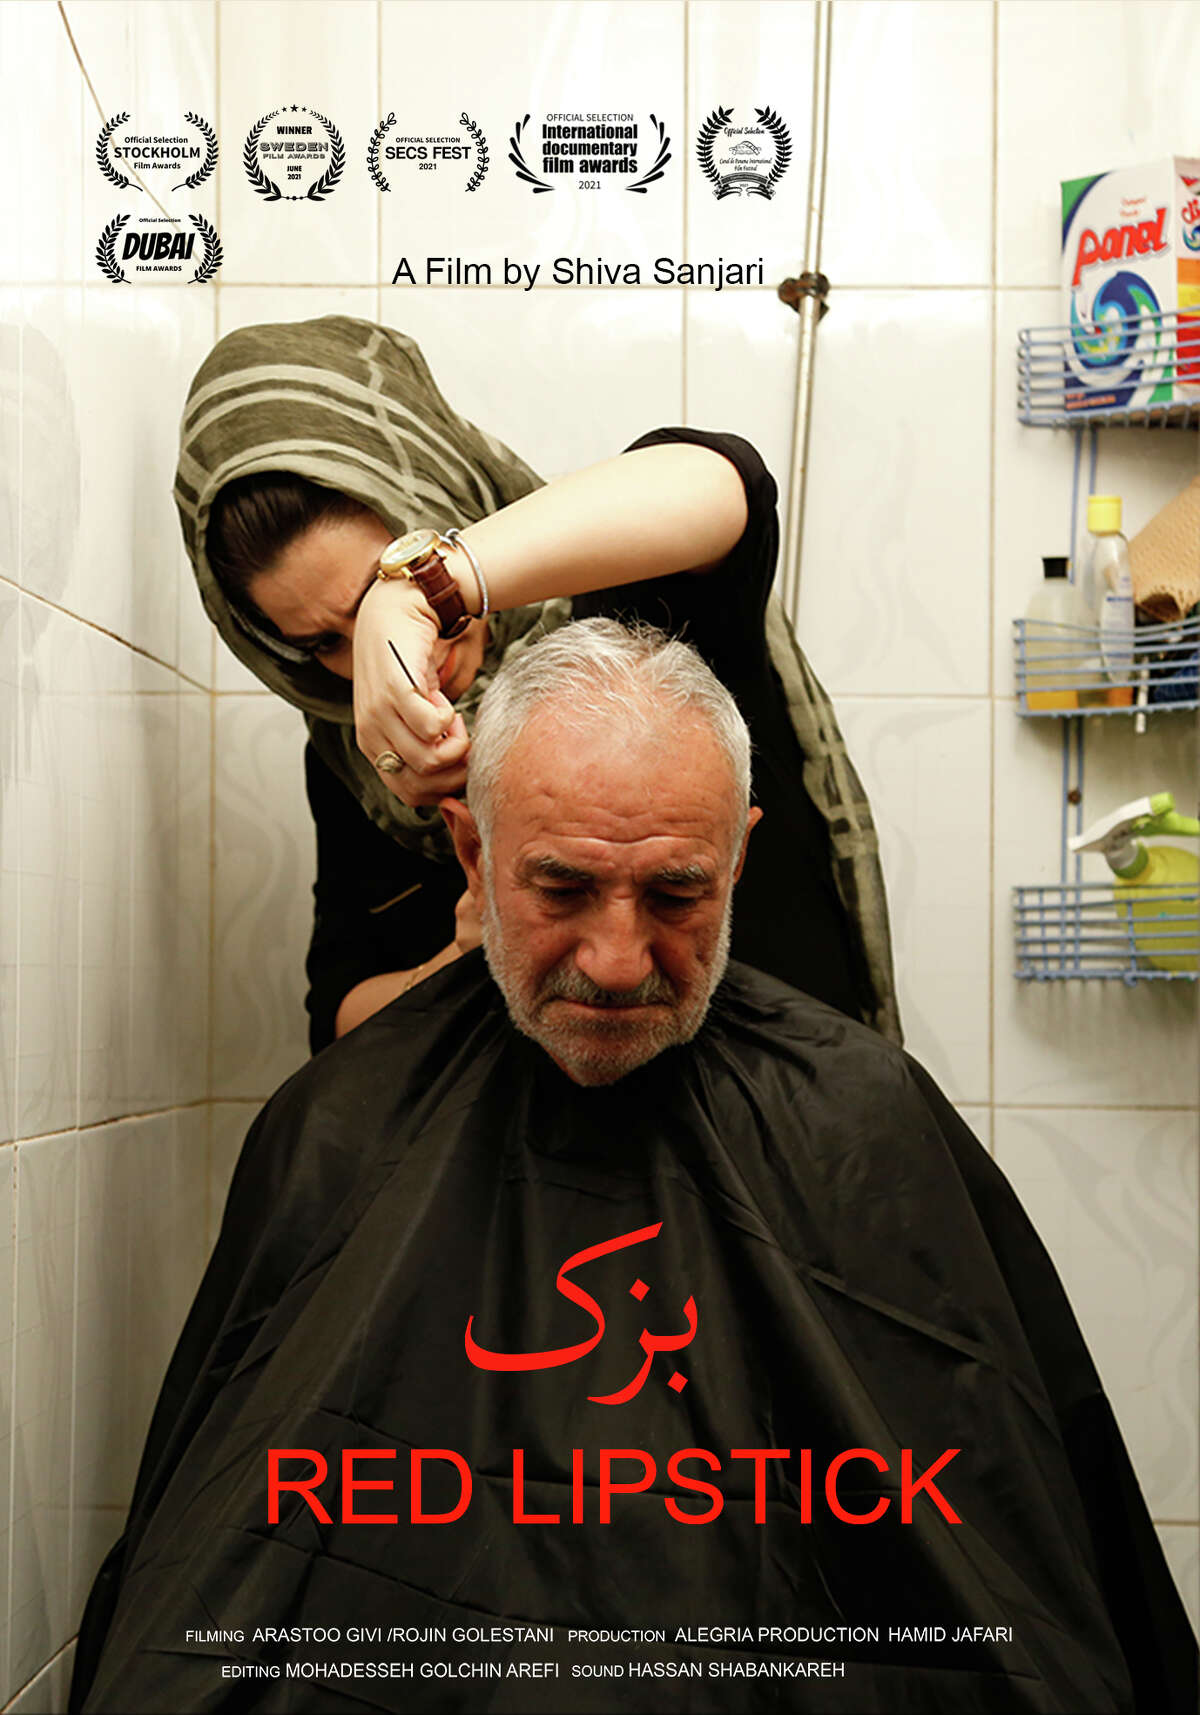 The poster for Red Lipstick: an Iranian film about a woman who runs a beauty parlor in search of a husband, provided by the Ridgefield Independent Film Festival, where the film will be featured.